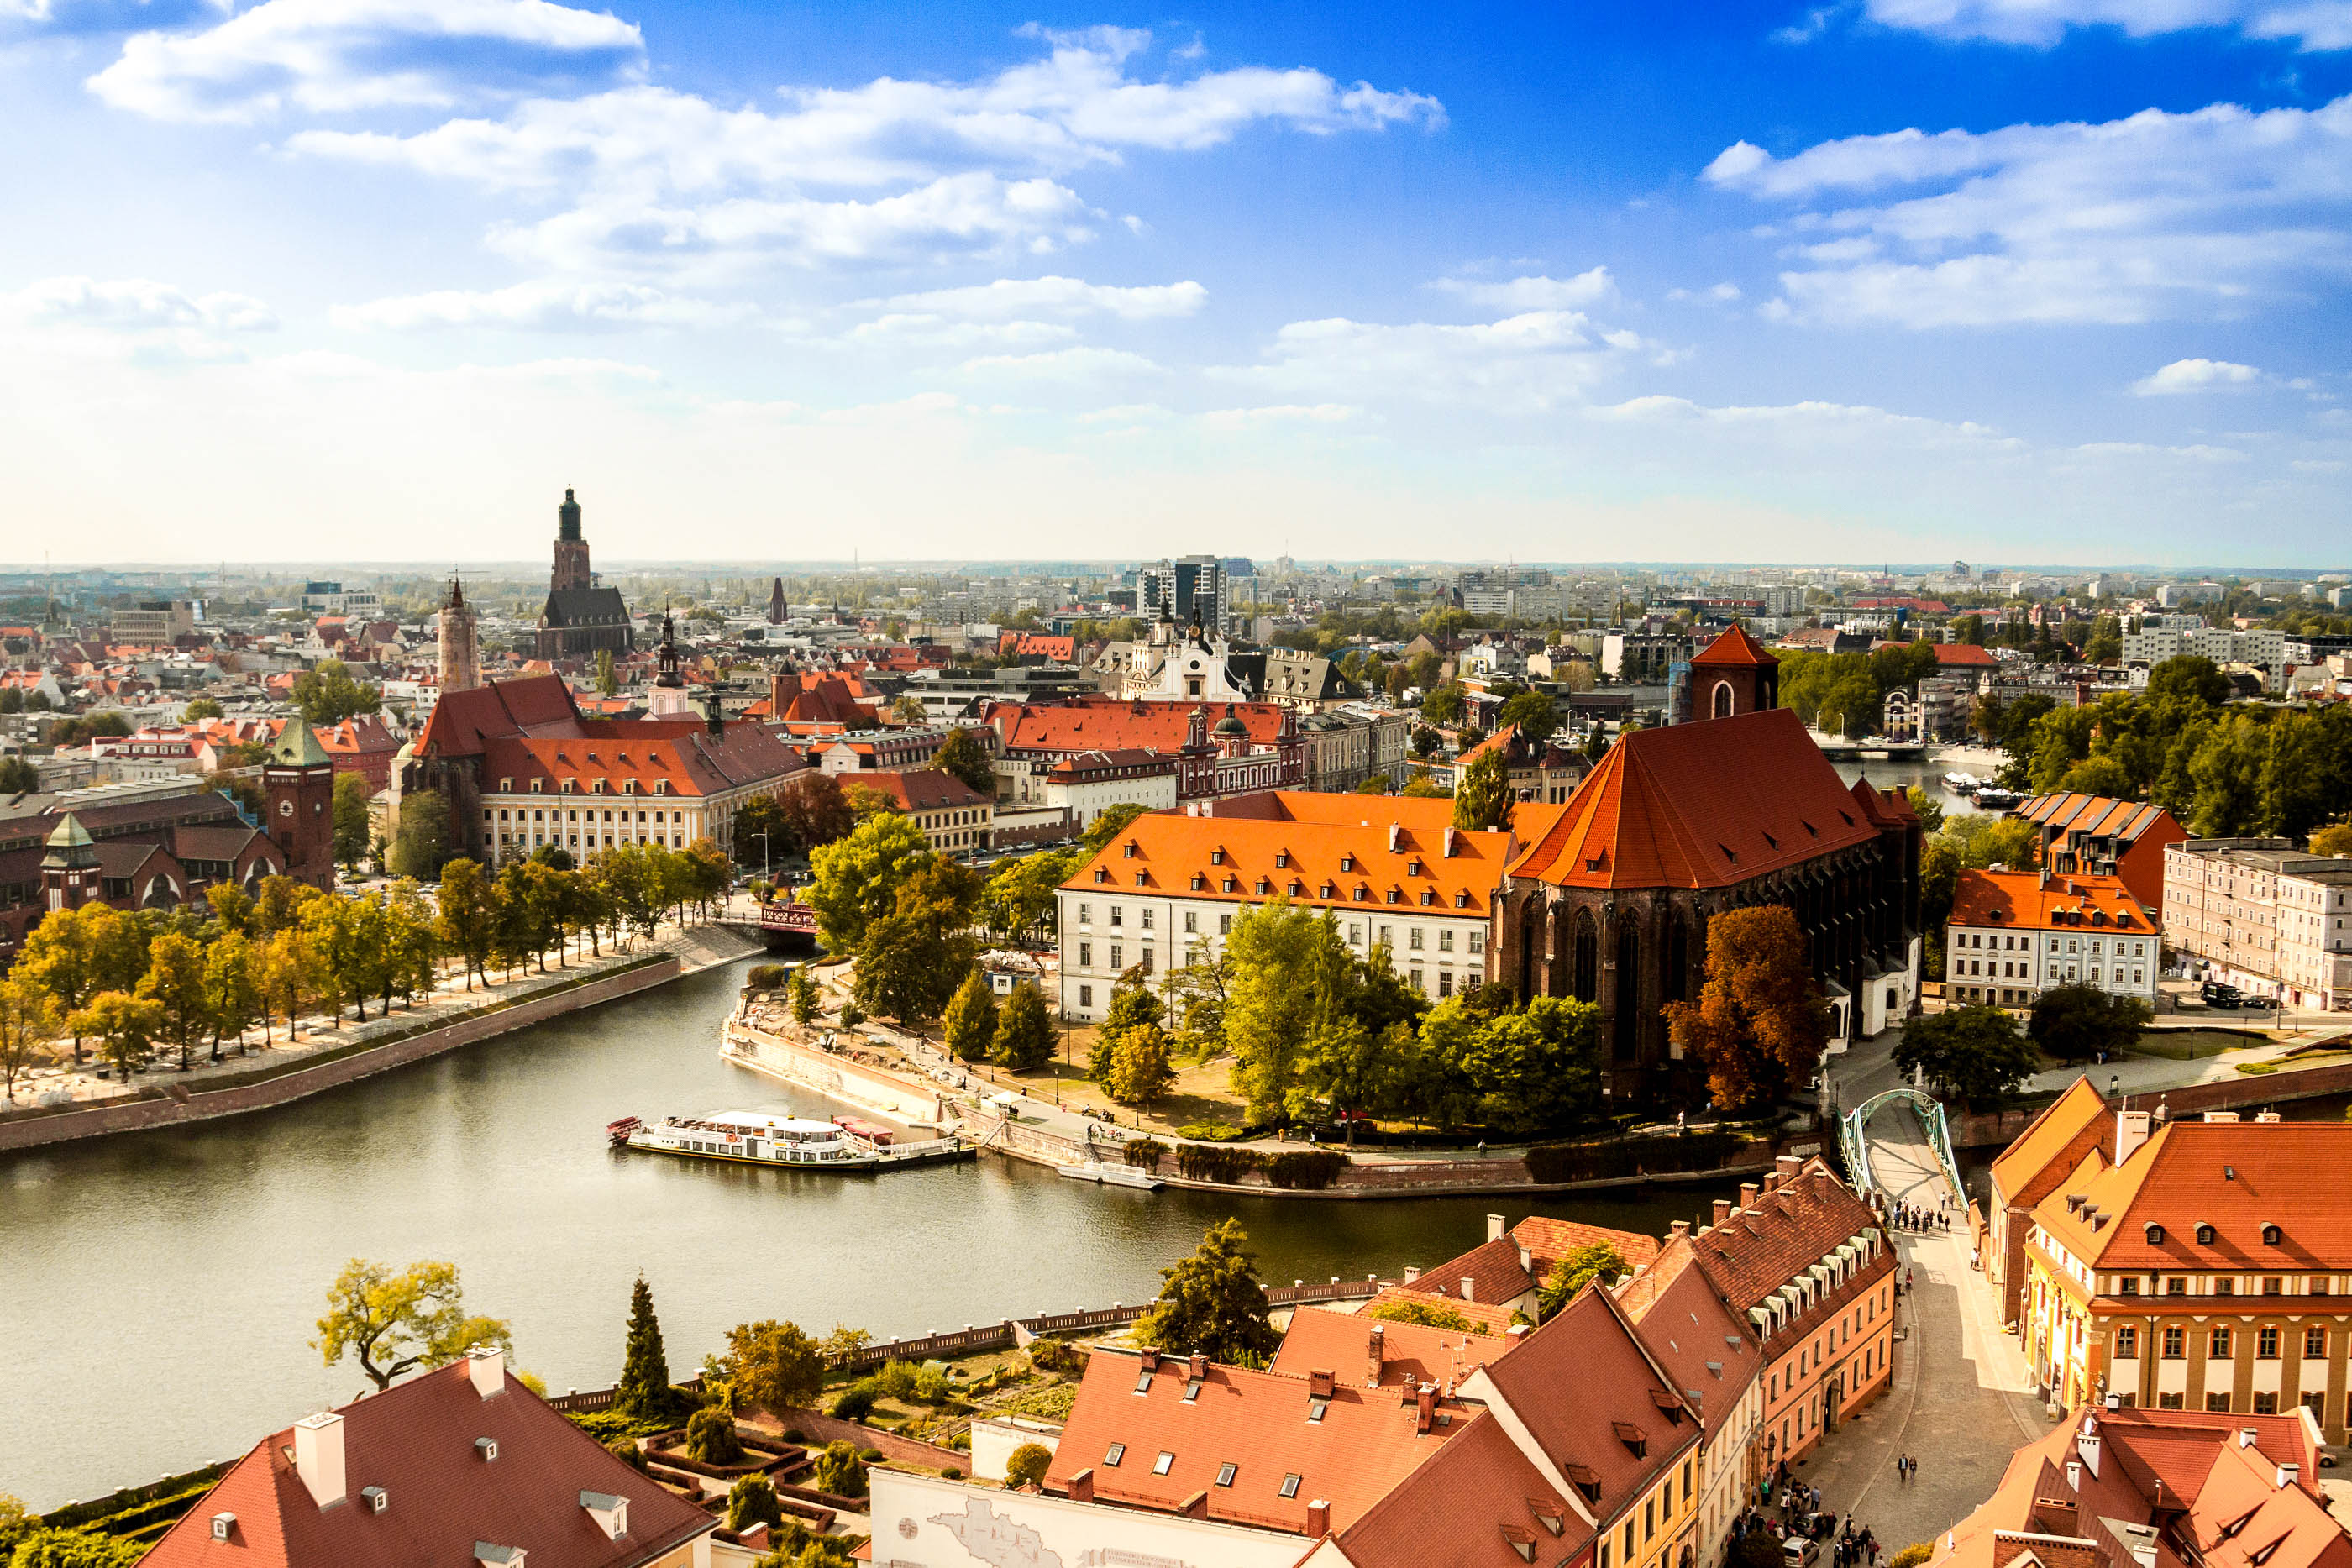 breslavia-is-one-of-the-oldest-cities-in-p-secret-world